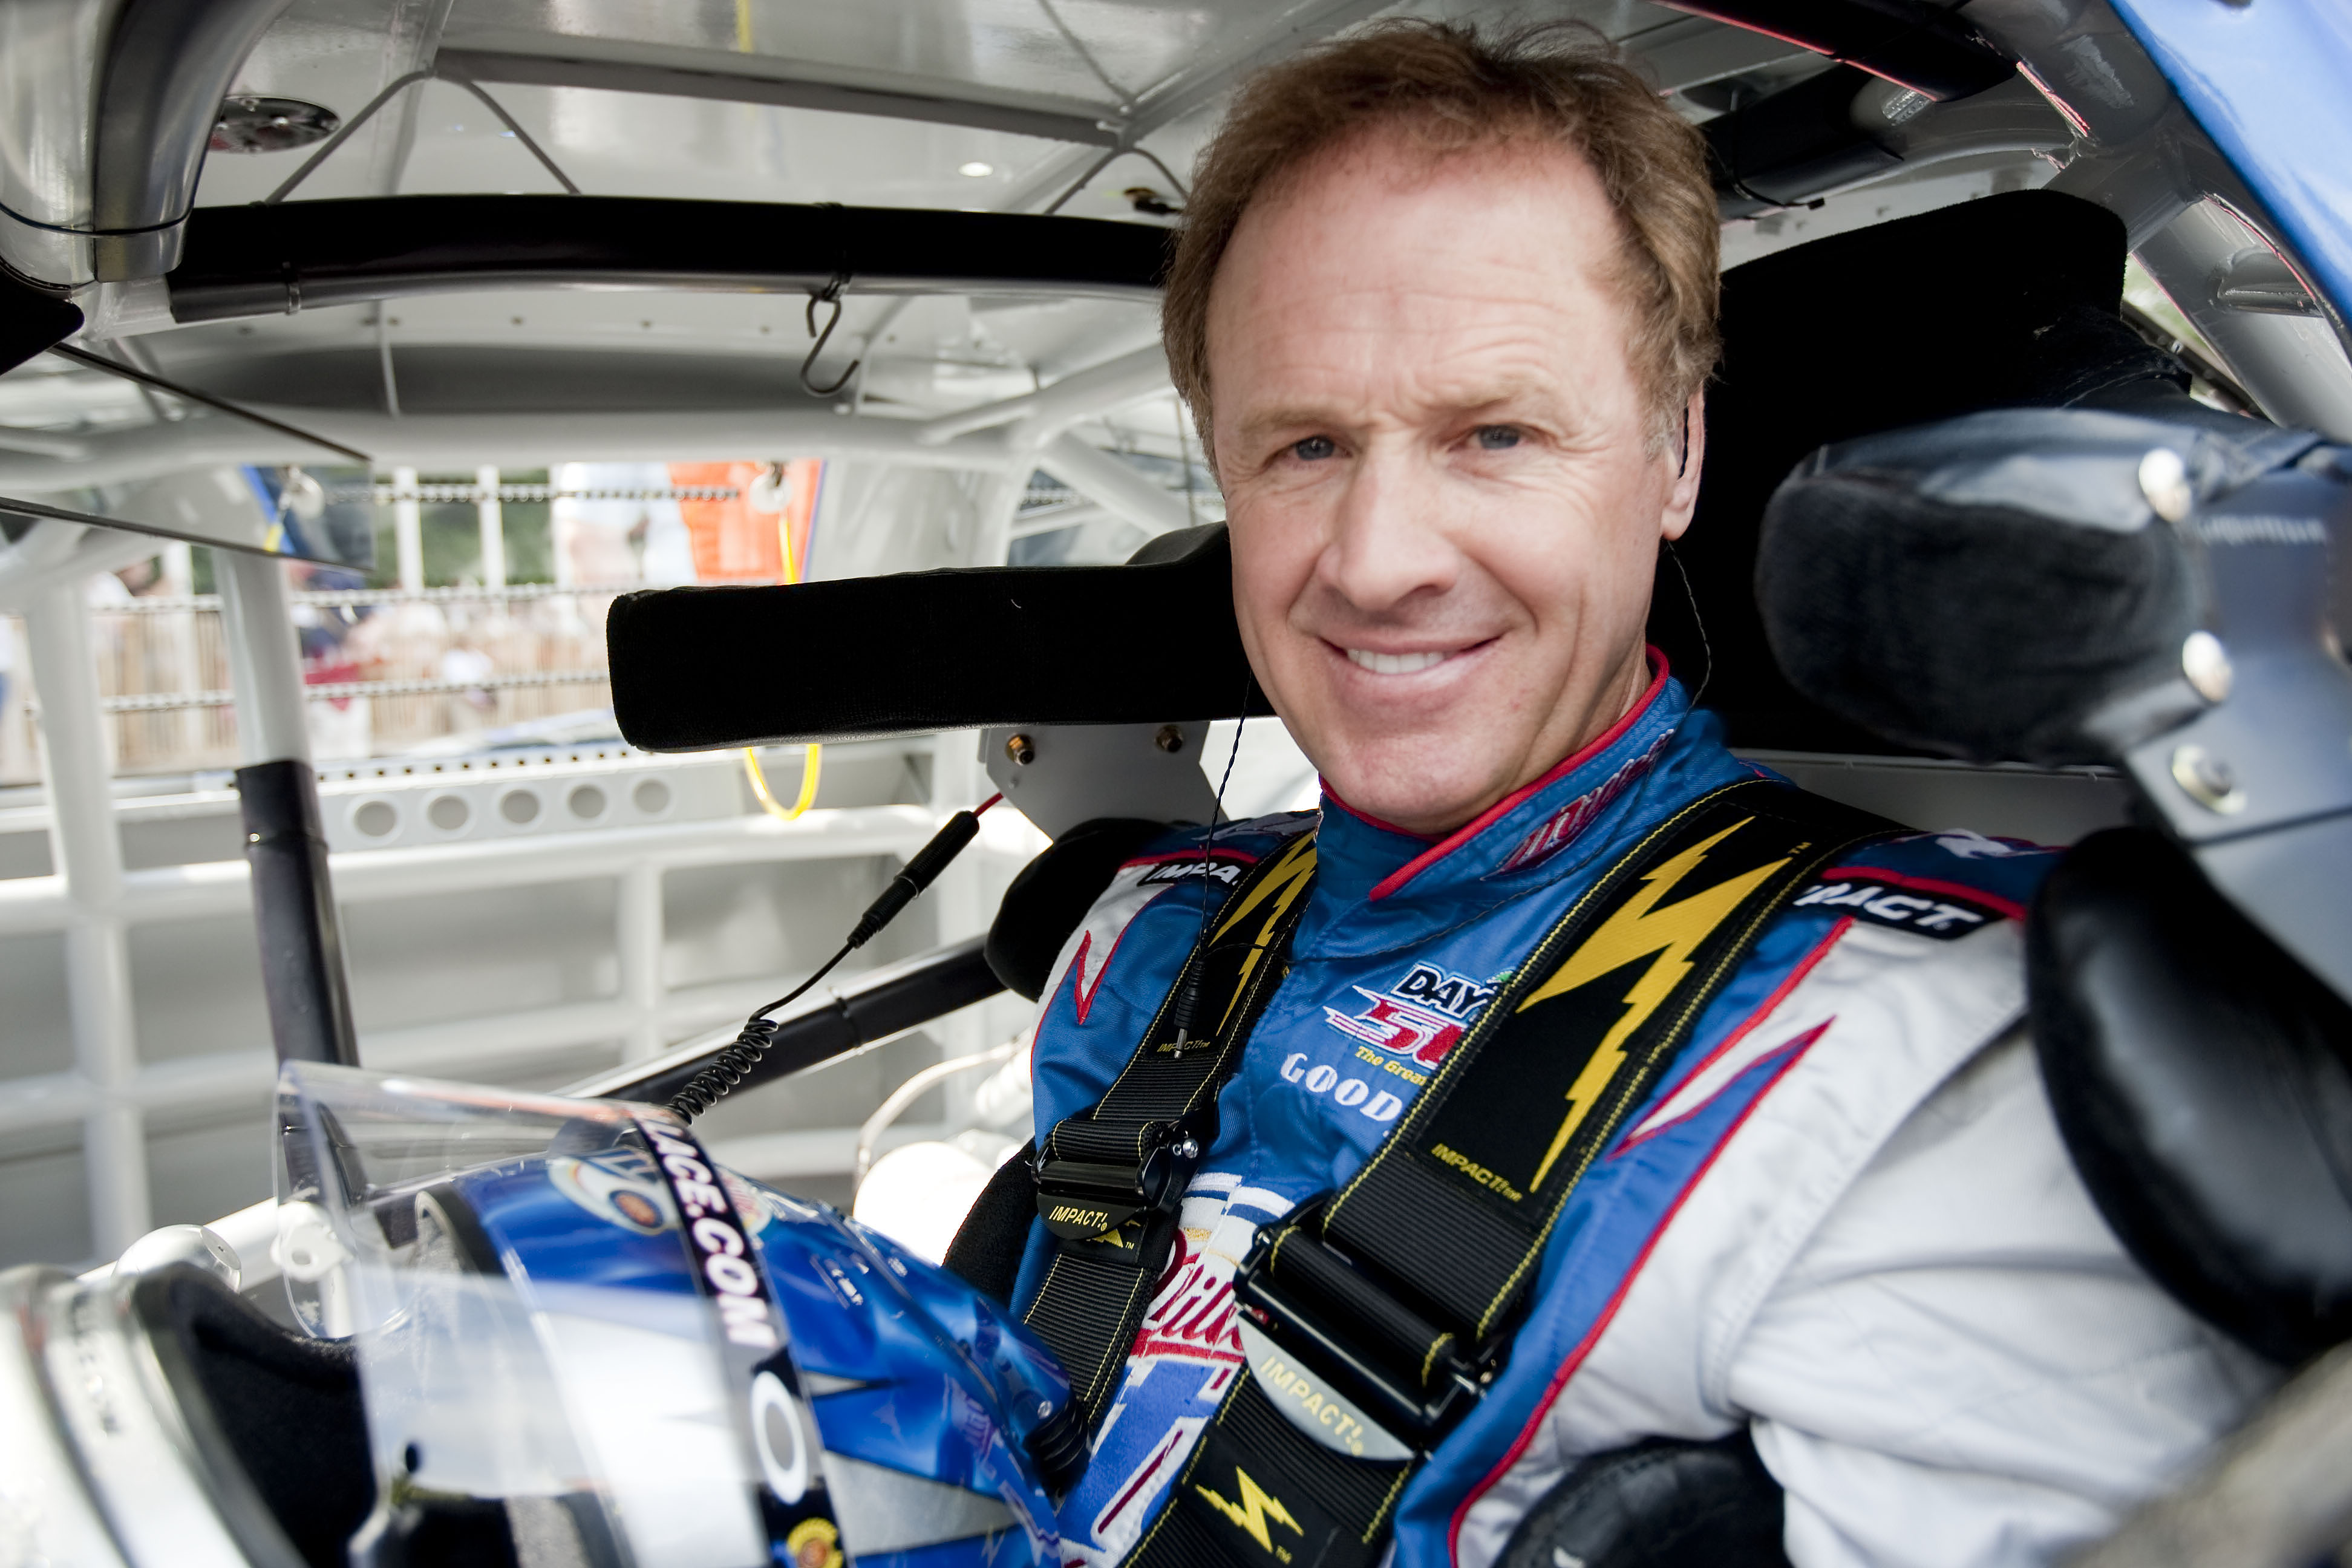 CHICHESTER, ENGLAND - JULY 3:  Rusty Wallace of USA during day one of The Goodwood Festival of Speed at The Goodwood Estate on July 3, 2009 in Chichester, England. (Photo by Peter Fox/Getty Images for NASCAR)